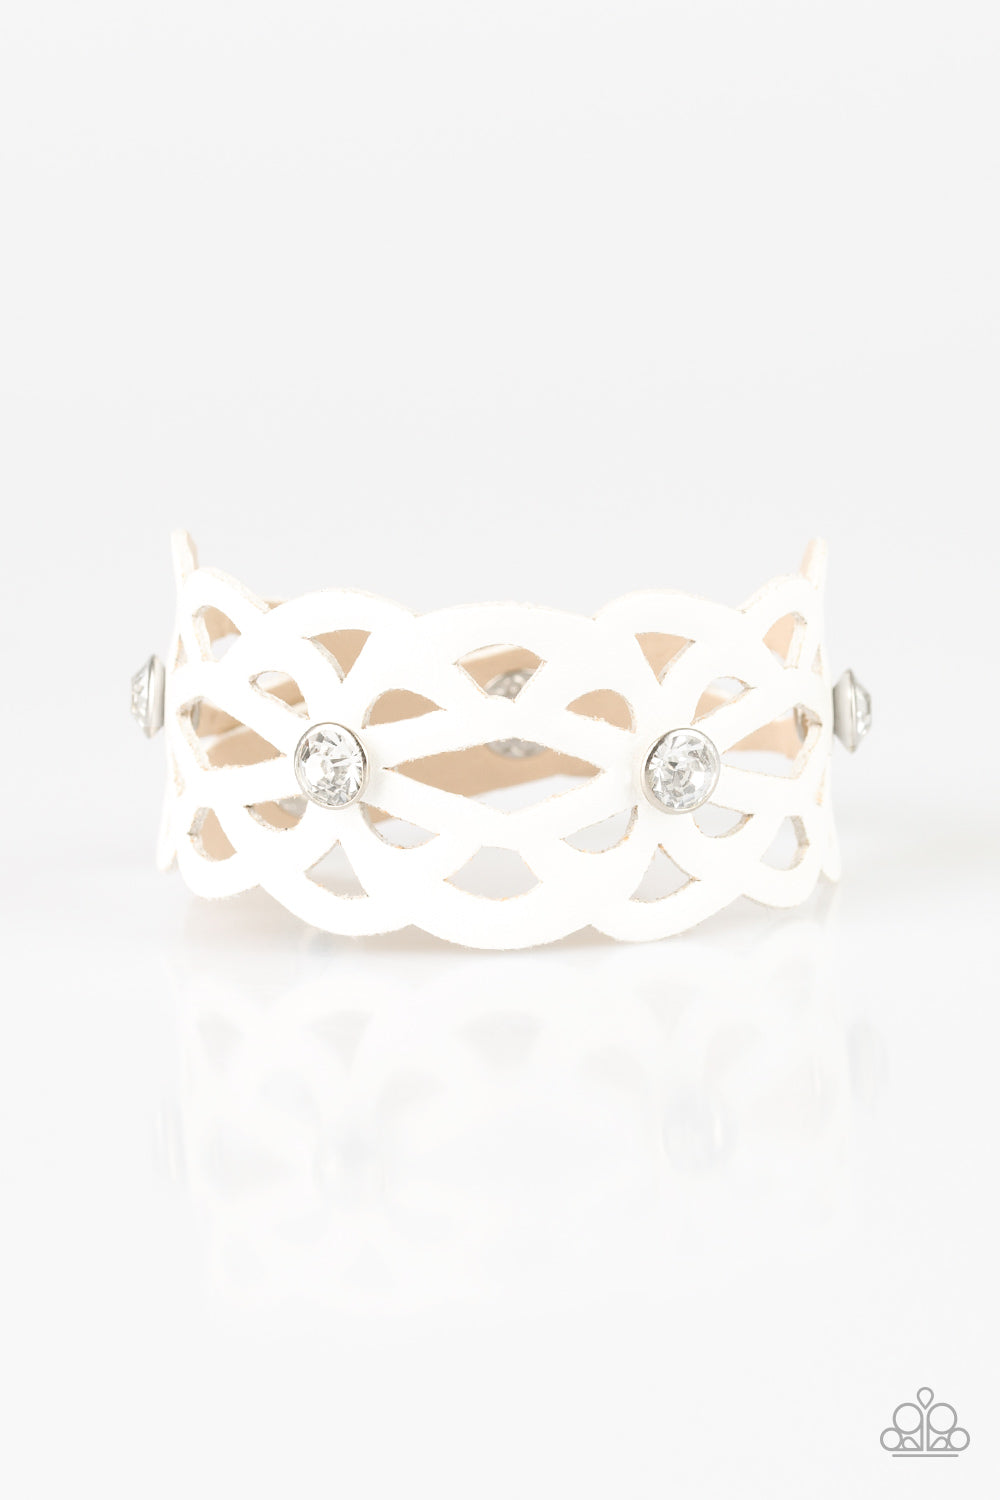 Paparazzi Accessories - Runaway Radiance - White Bracelet - JMJ Jewelry Collection